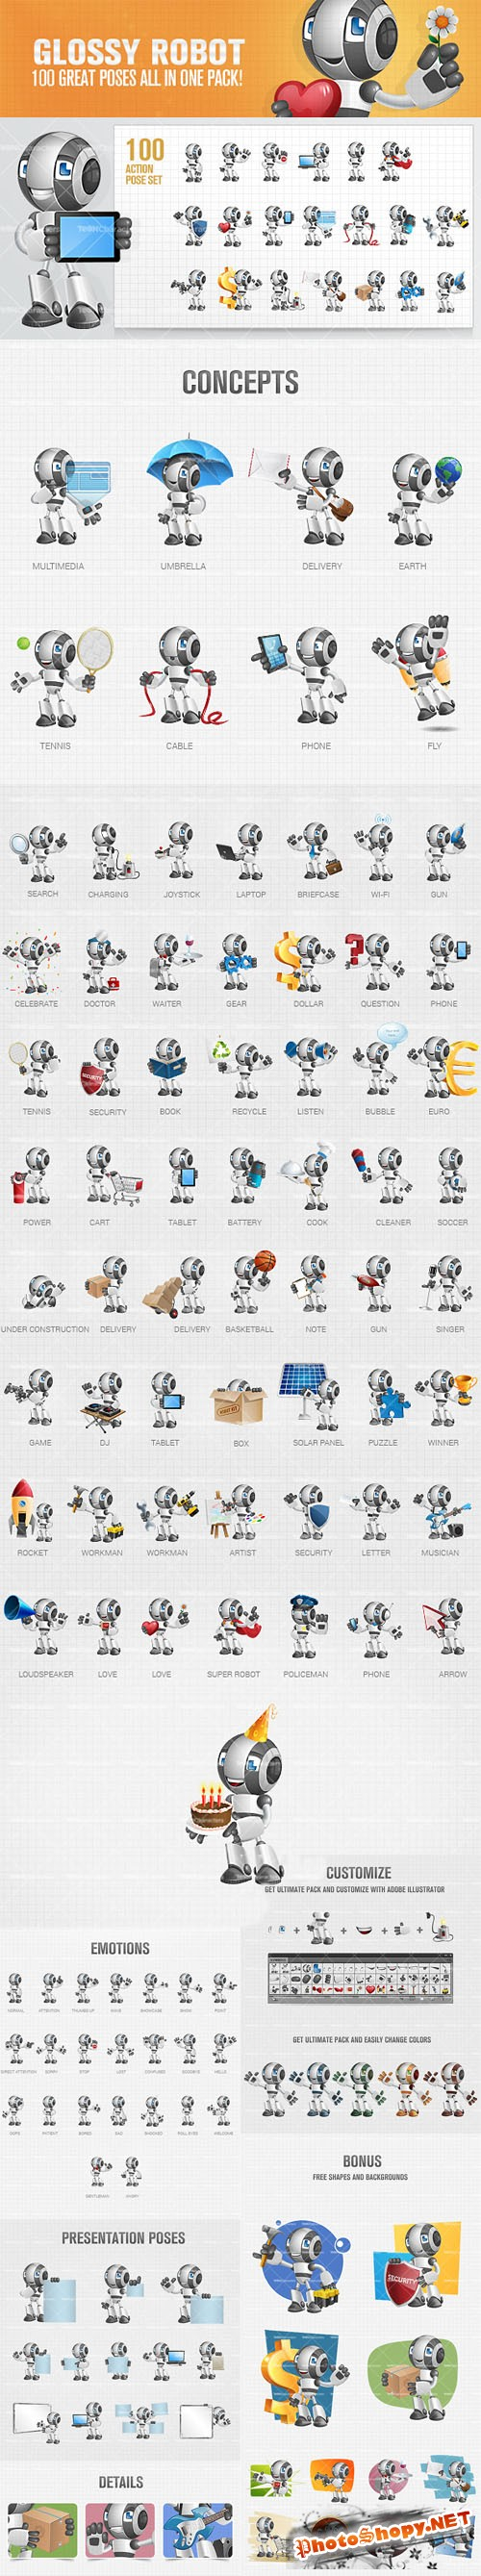 Glossy Robot Cartoon Character Vector Elements